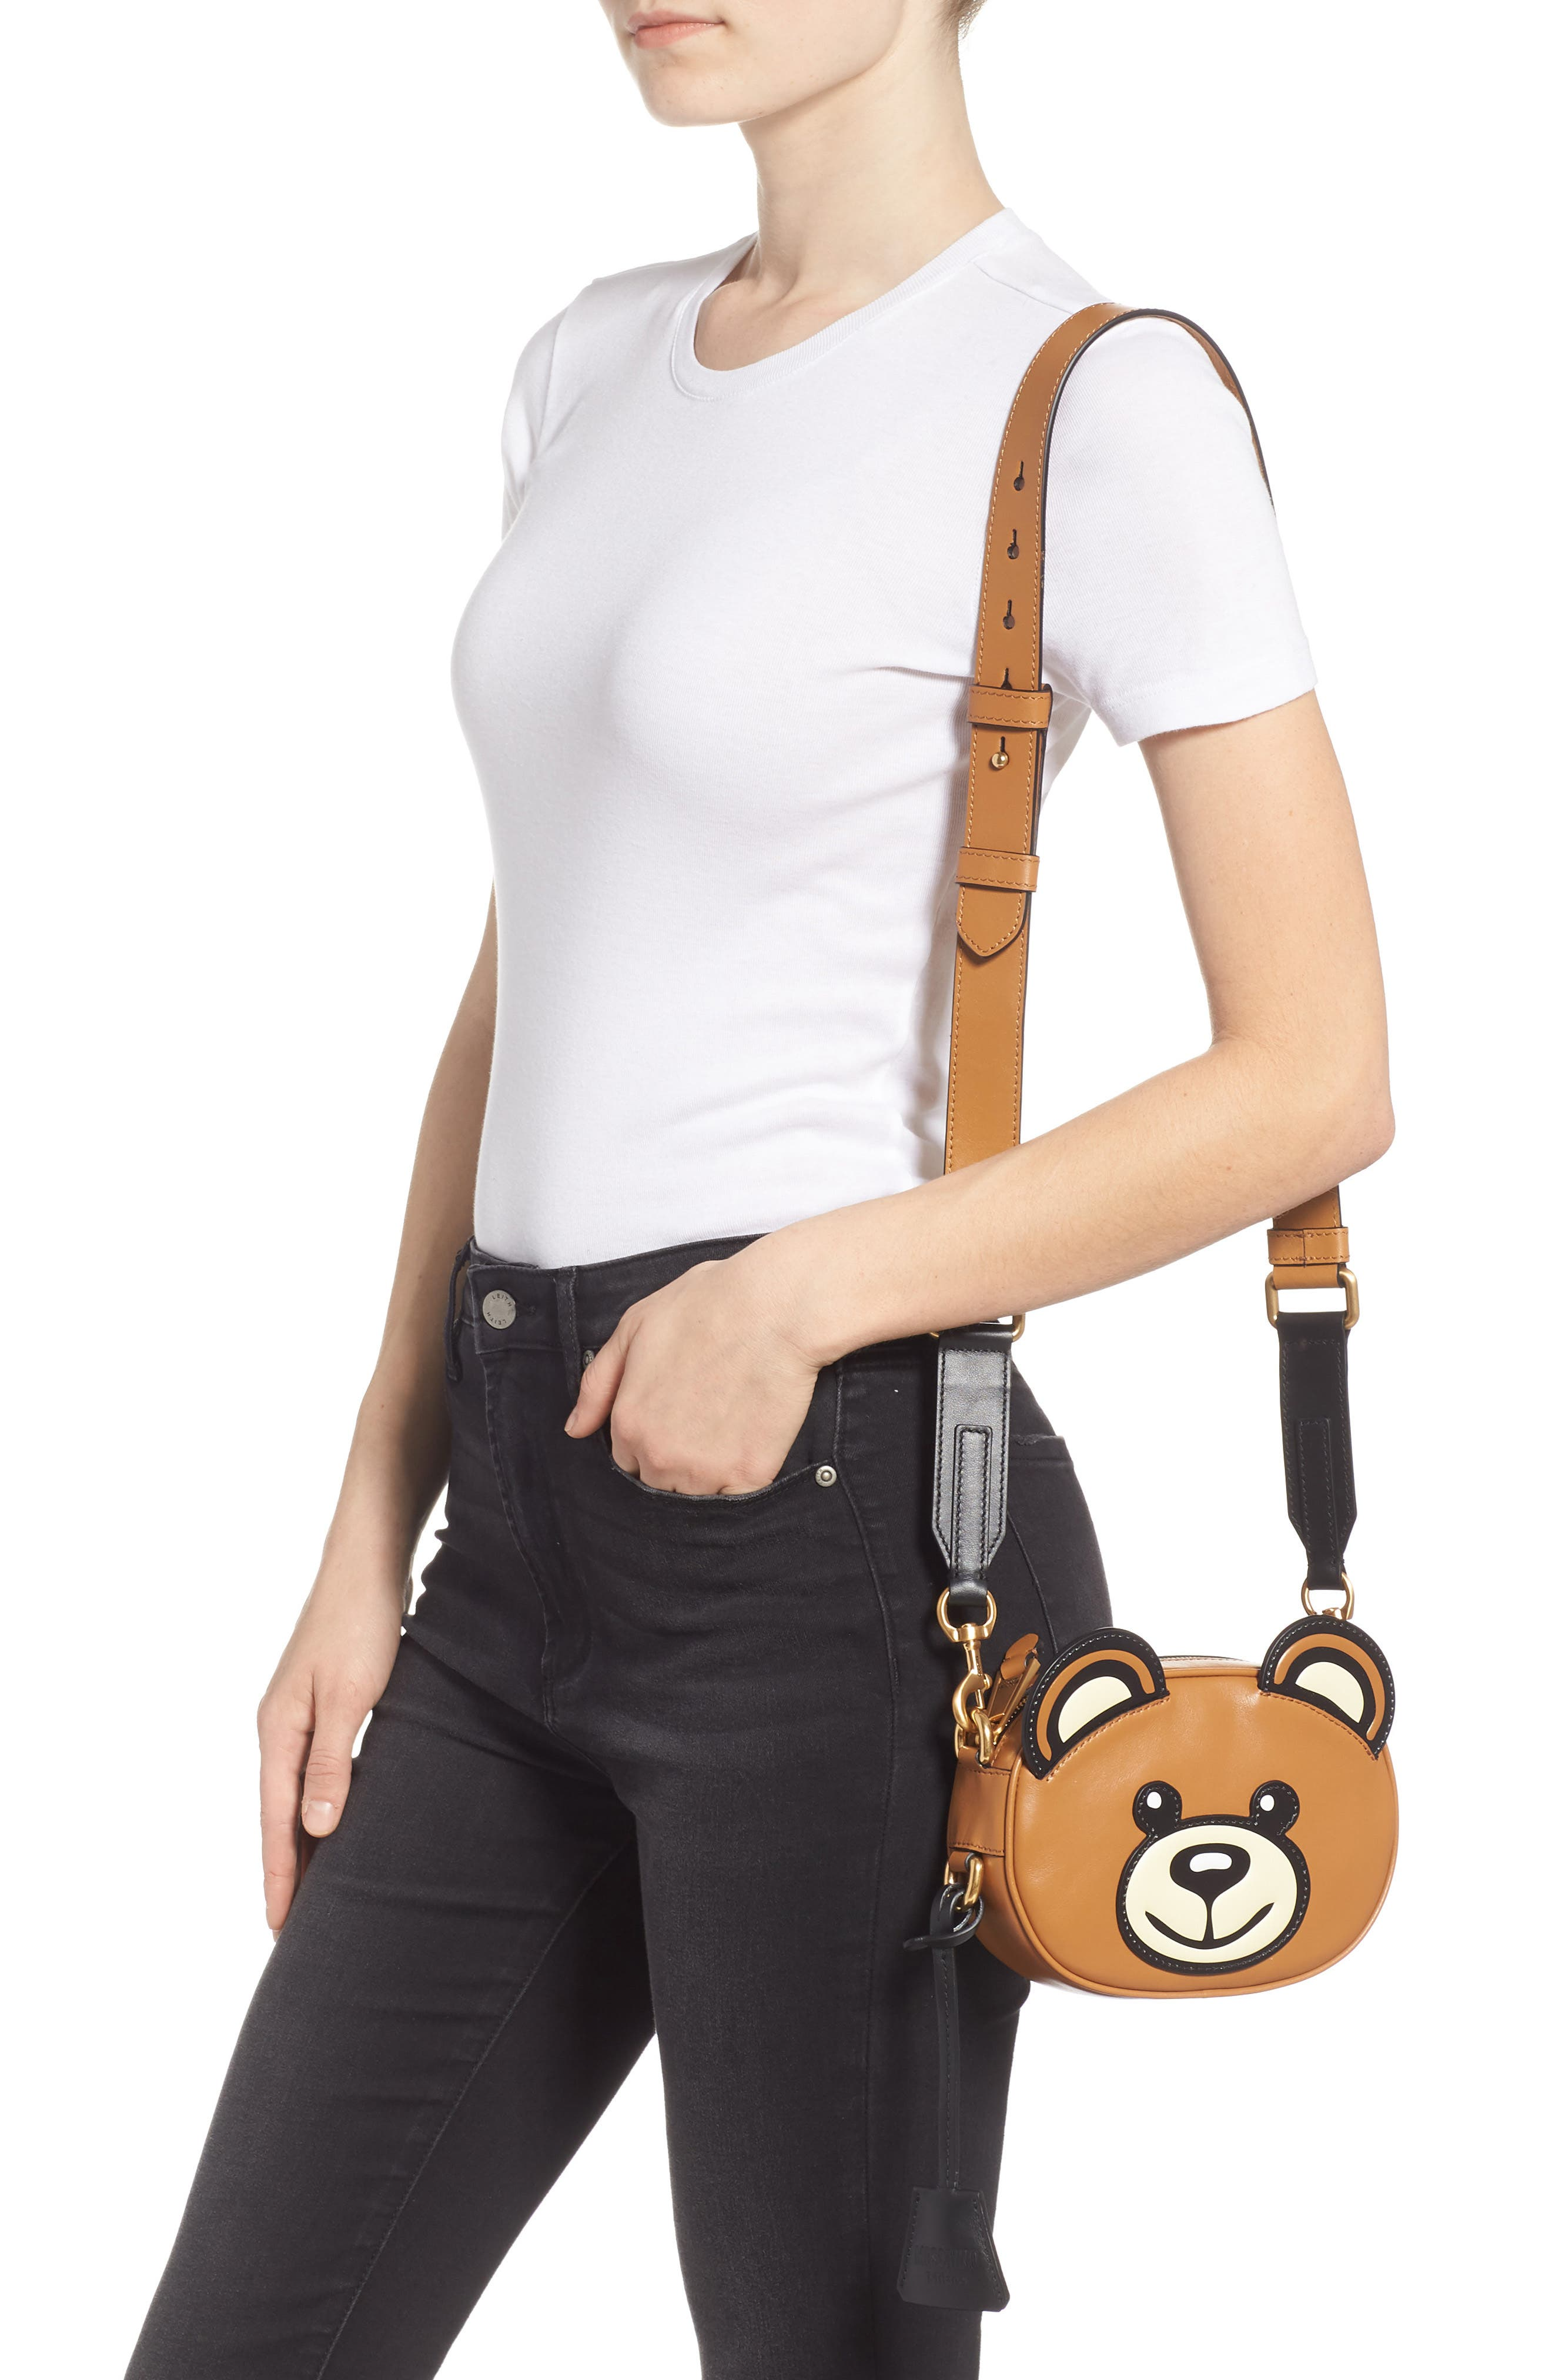 MOSCHINO, Crystal Teddy Leather Crossbody Bag, Alternate thumbnail 2, color, BROWN